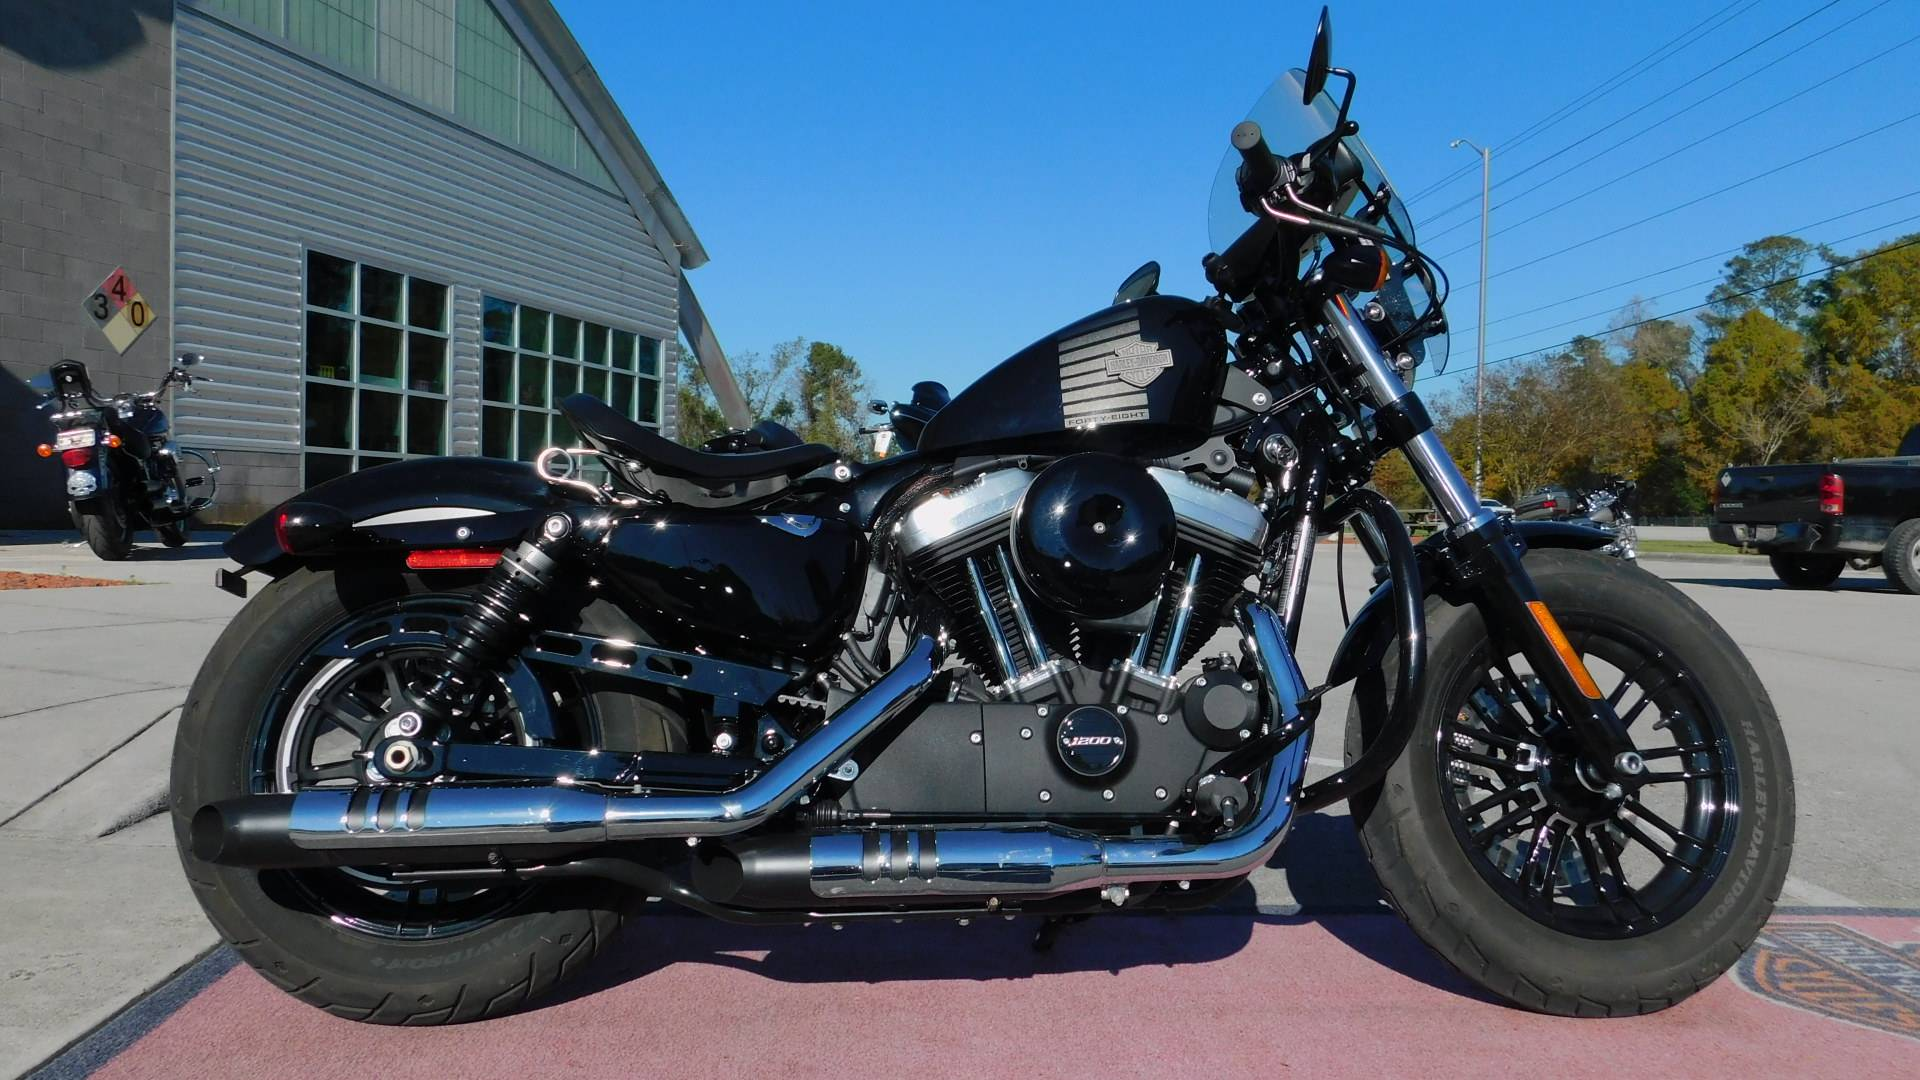 Used 2016 Harley Davidson Sportster Forty Eight Motorcycles In Jacksonville Nc Nrhd5802 Black